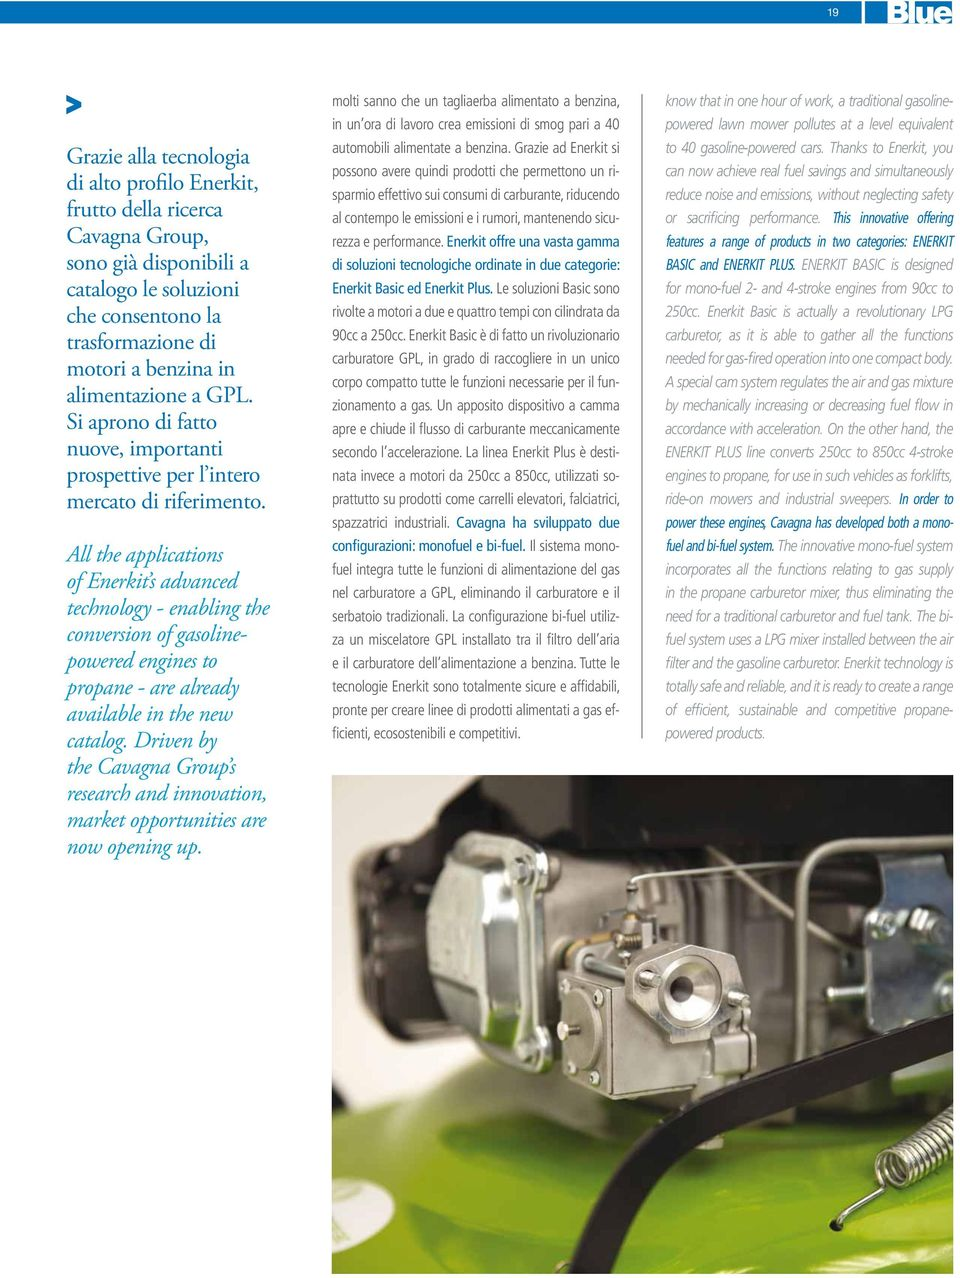 All the applications of Enerkit s advanced technology - enabling the conversion of gasolinepowered engines to propane - are already available in the new catalog.